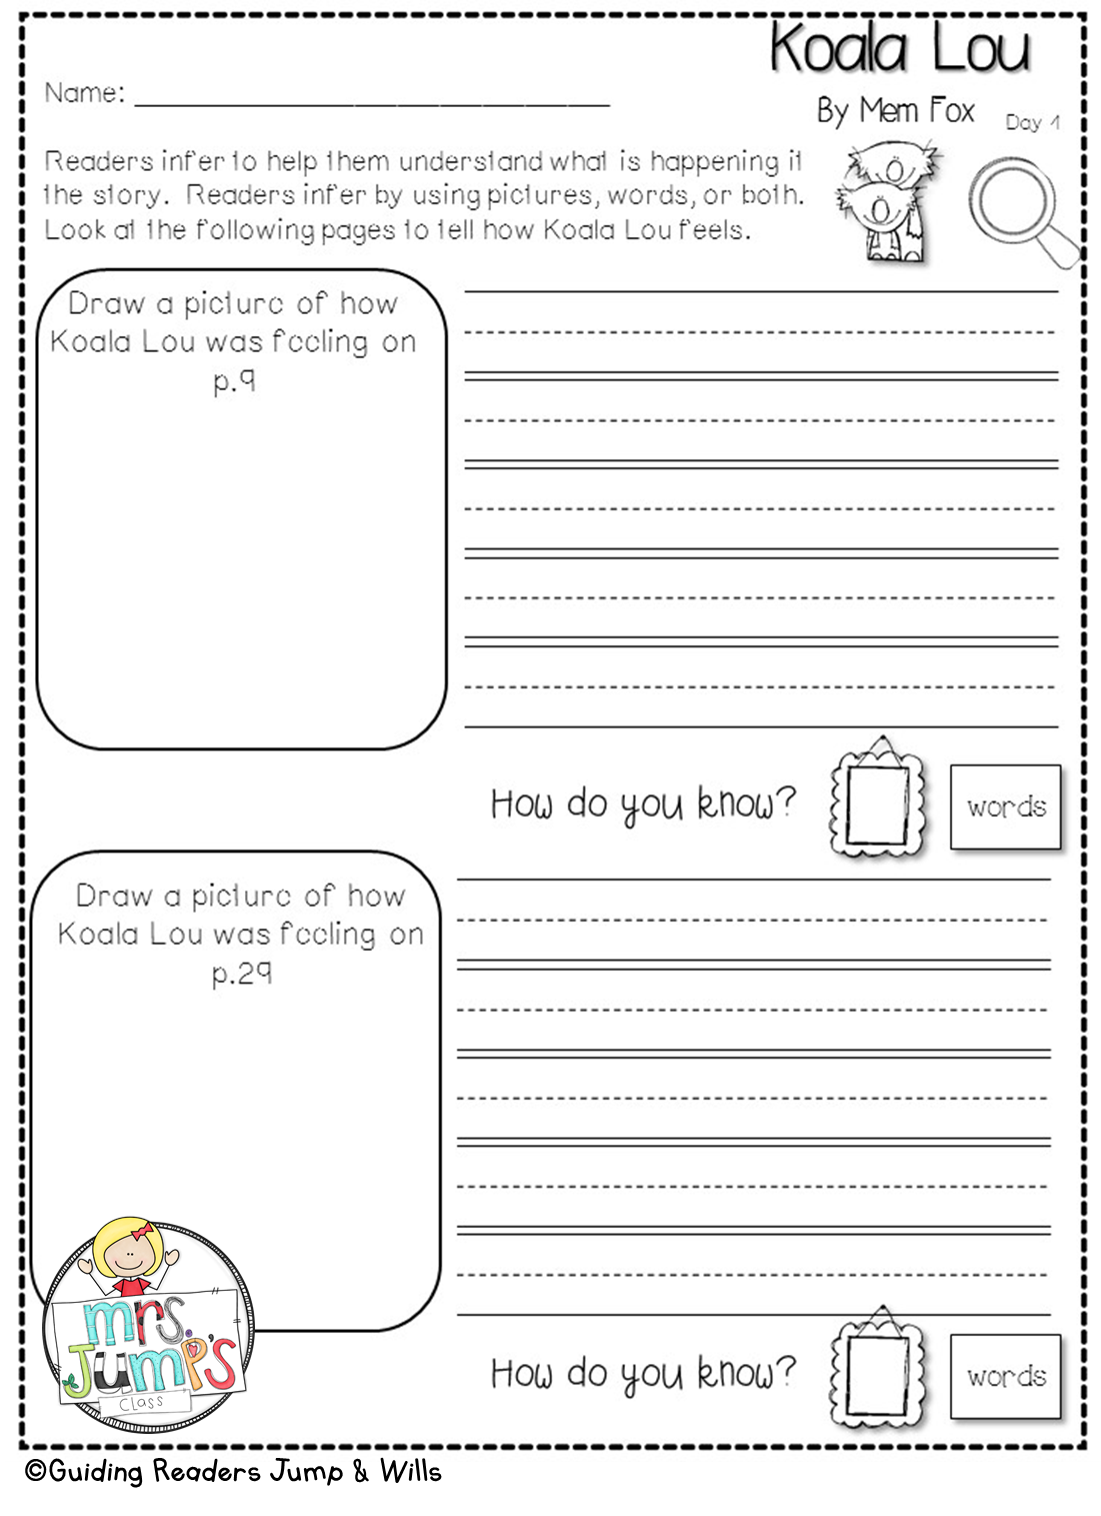 Mrs Jump S Class Book Study Worksheets Don T Grow Dendrites Chapters 1 Amp 2 Lots Of Pictures